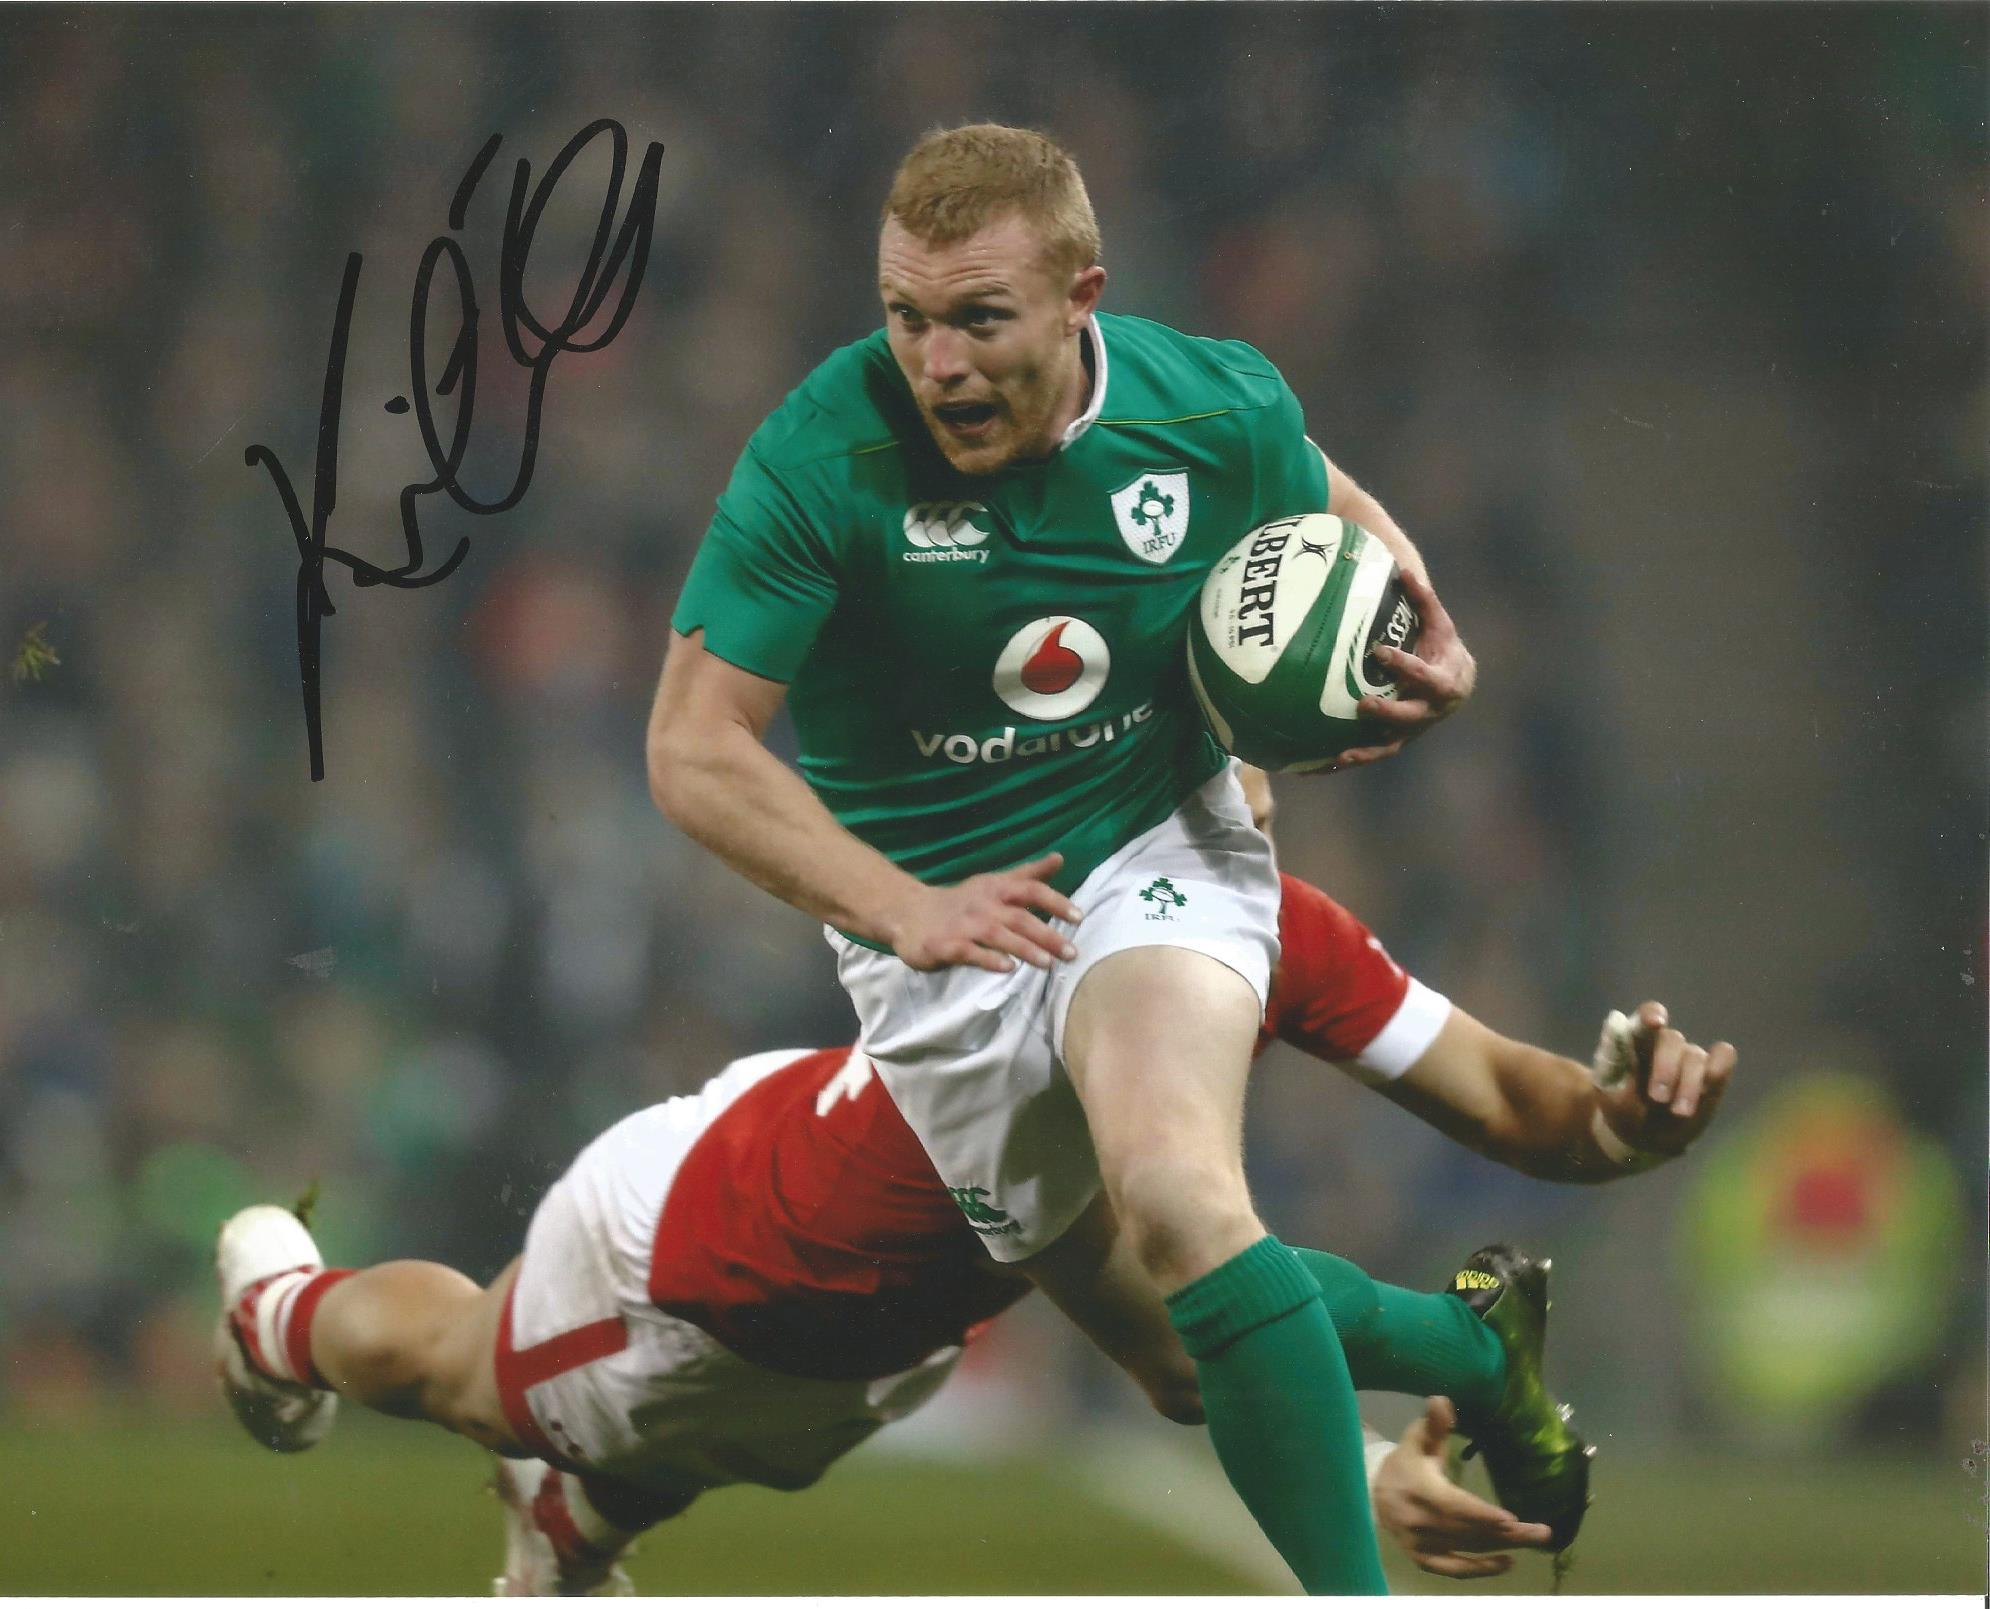 Lot 397 - Keith Earles Signed Ireland Rugby 8x10 Photo. Good Condition. All signed pieces come with a